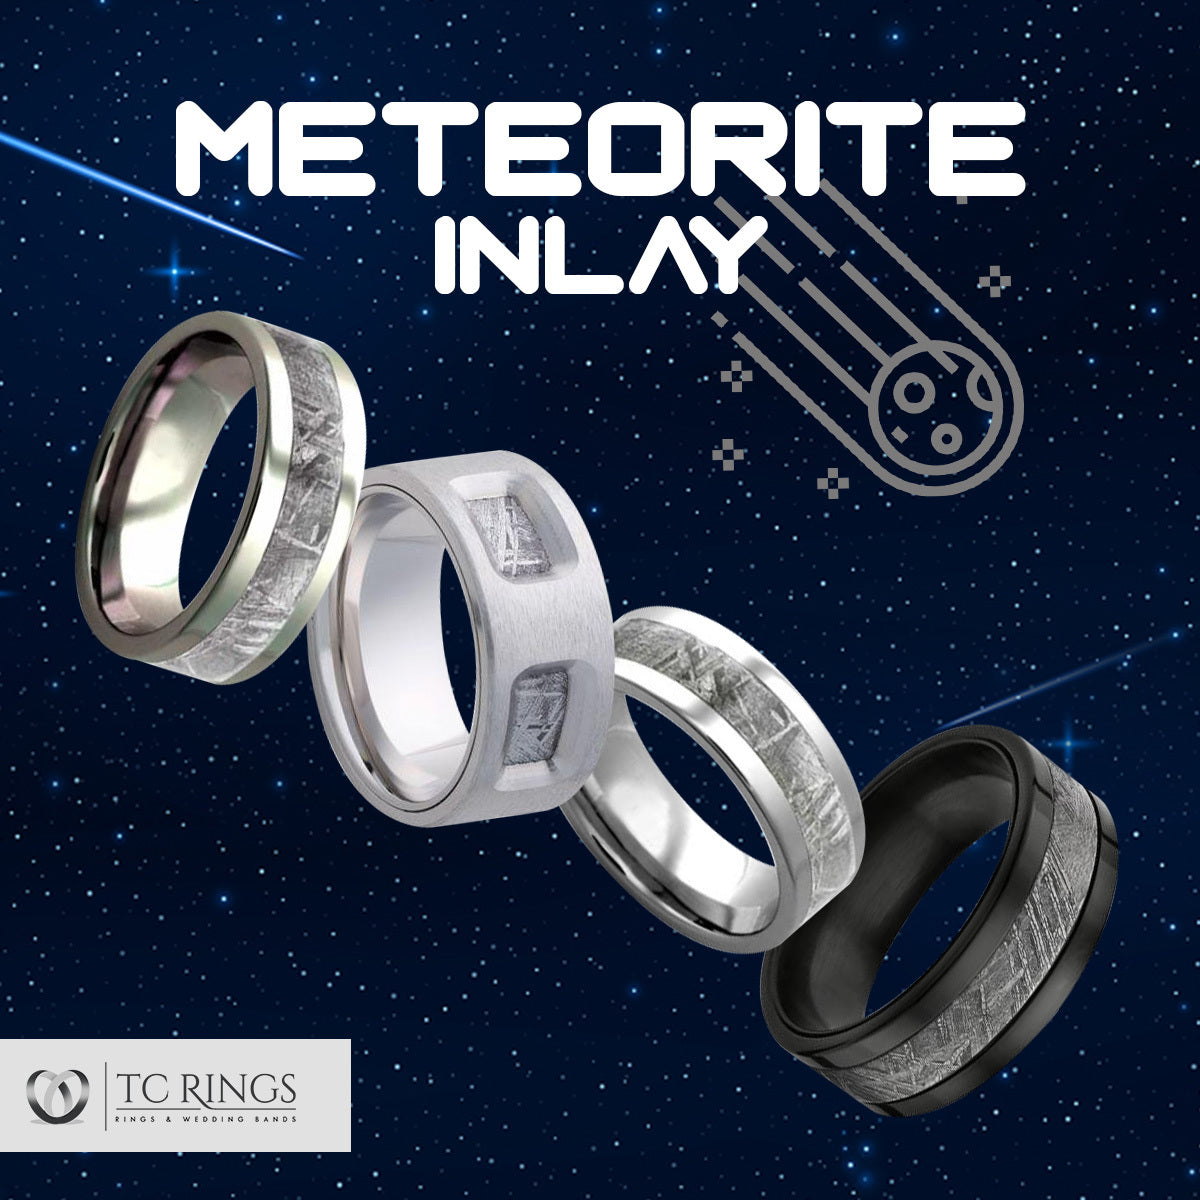 Meteorite Rings & Wedding Bands